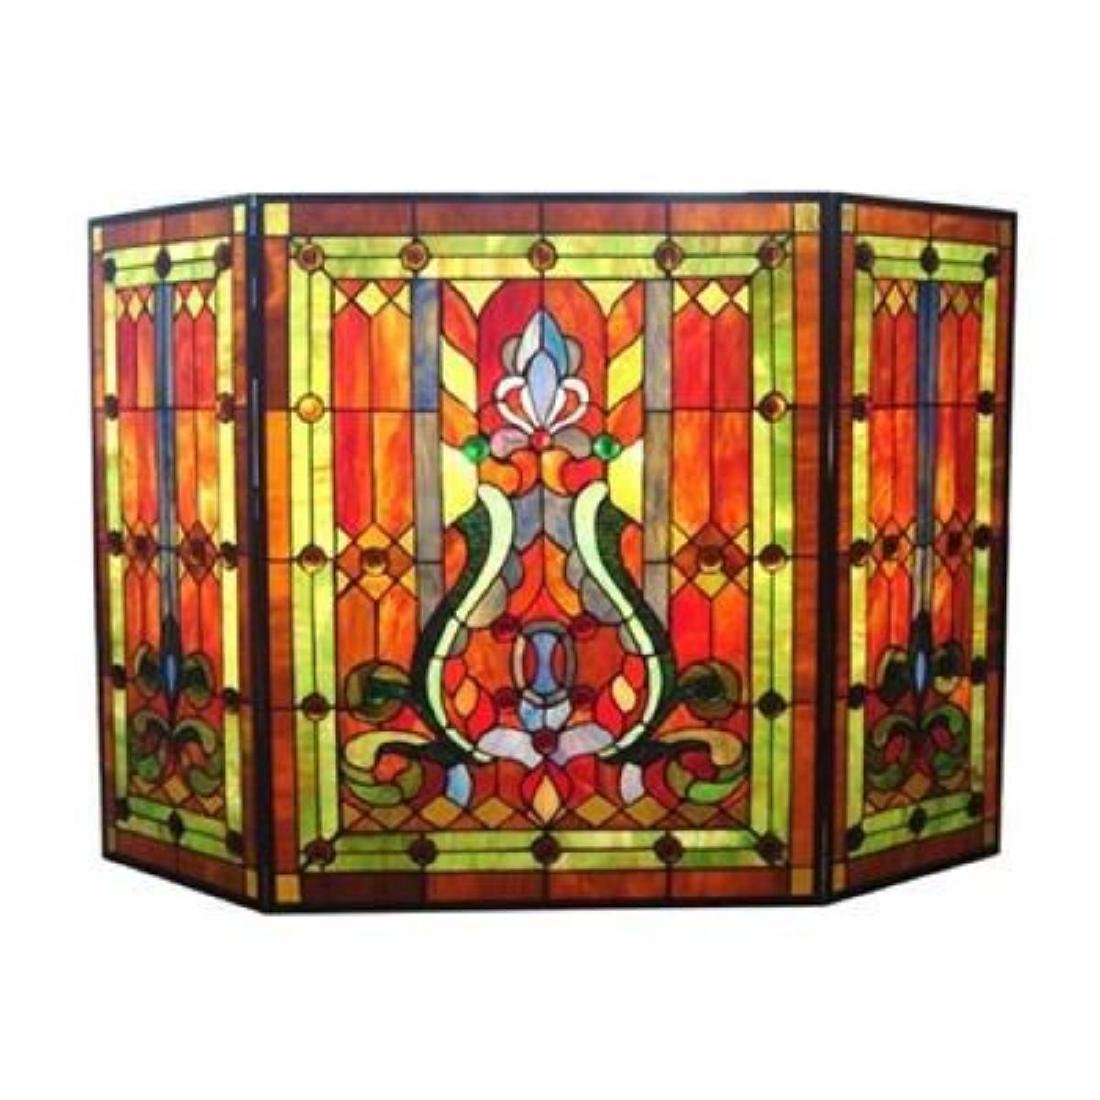 Tiffany-glass Victorian 3pcs Folding Fireplace Screen